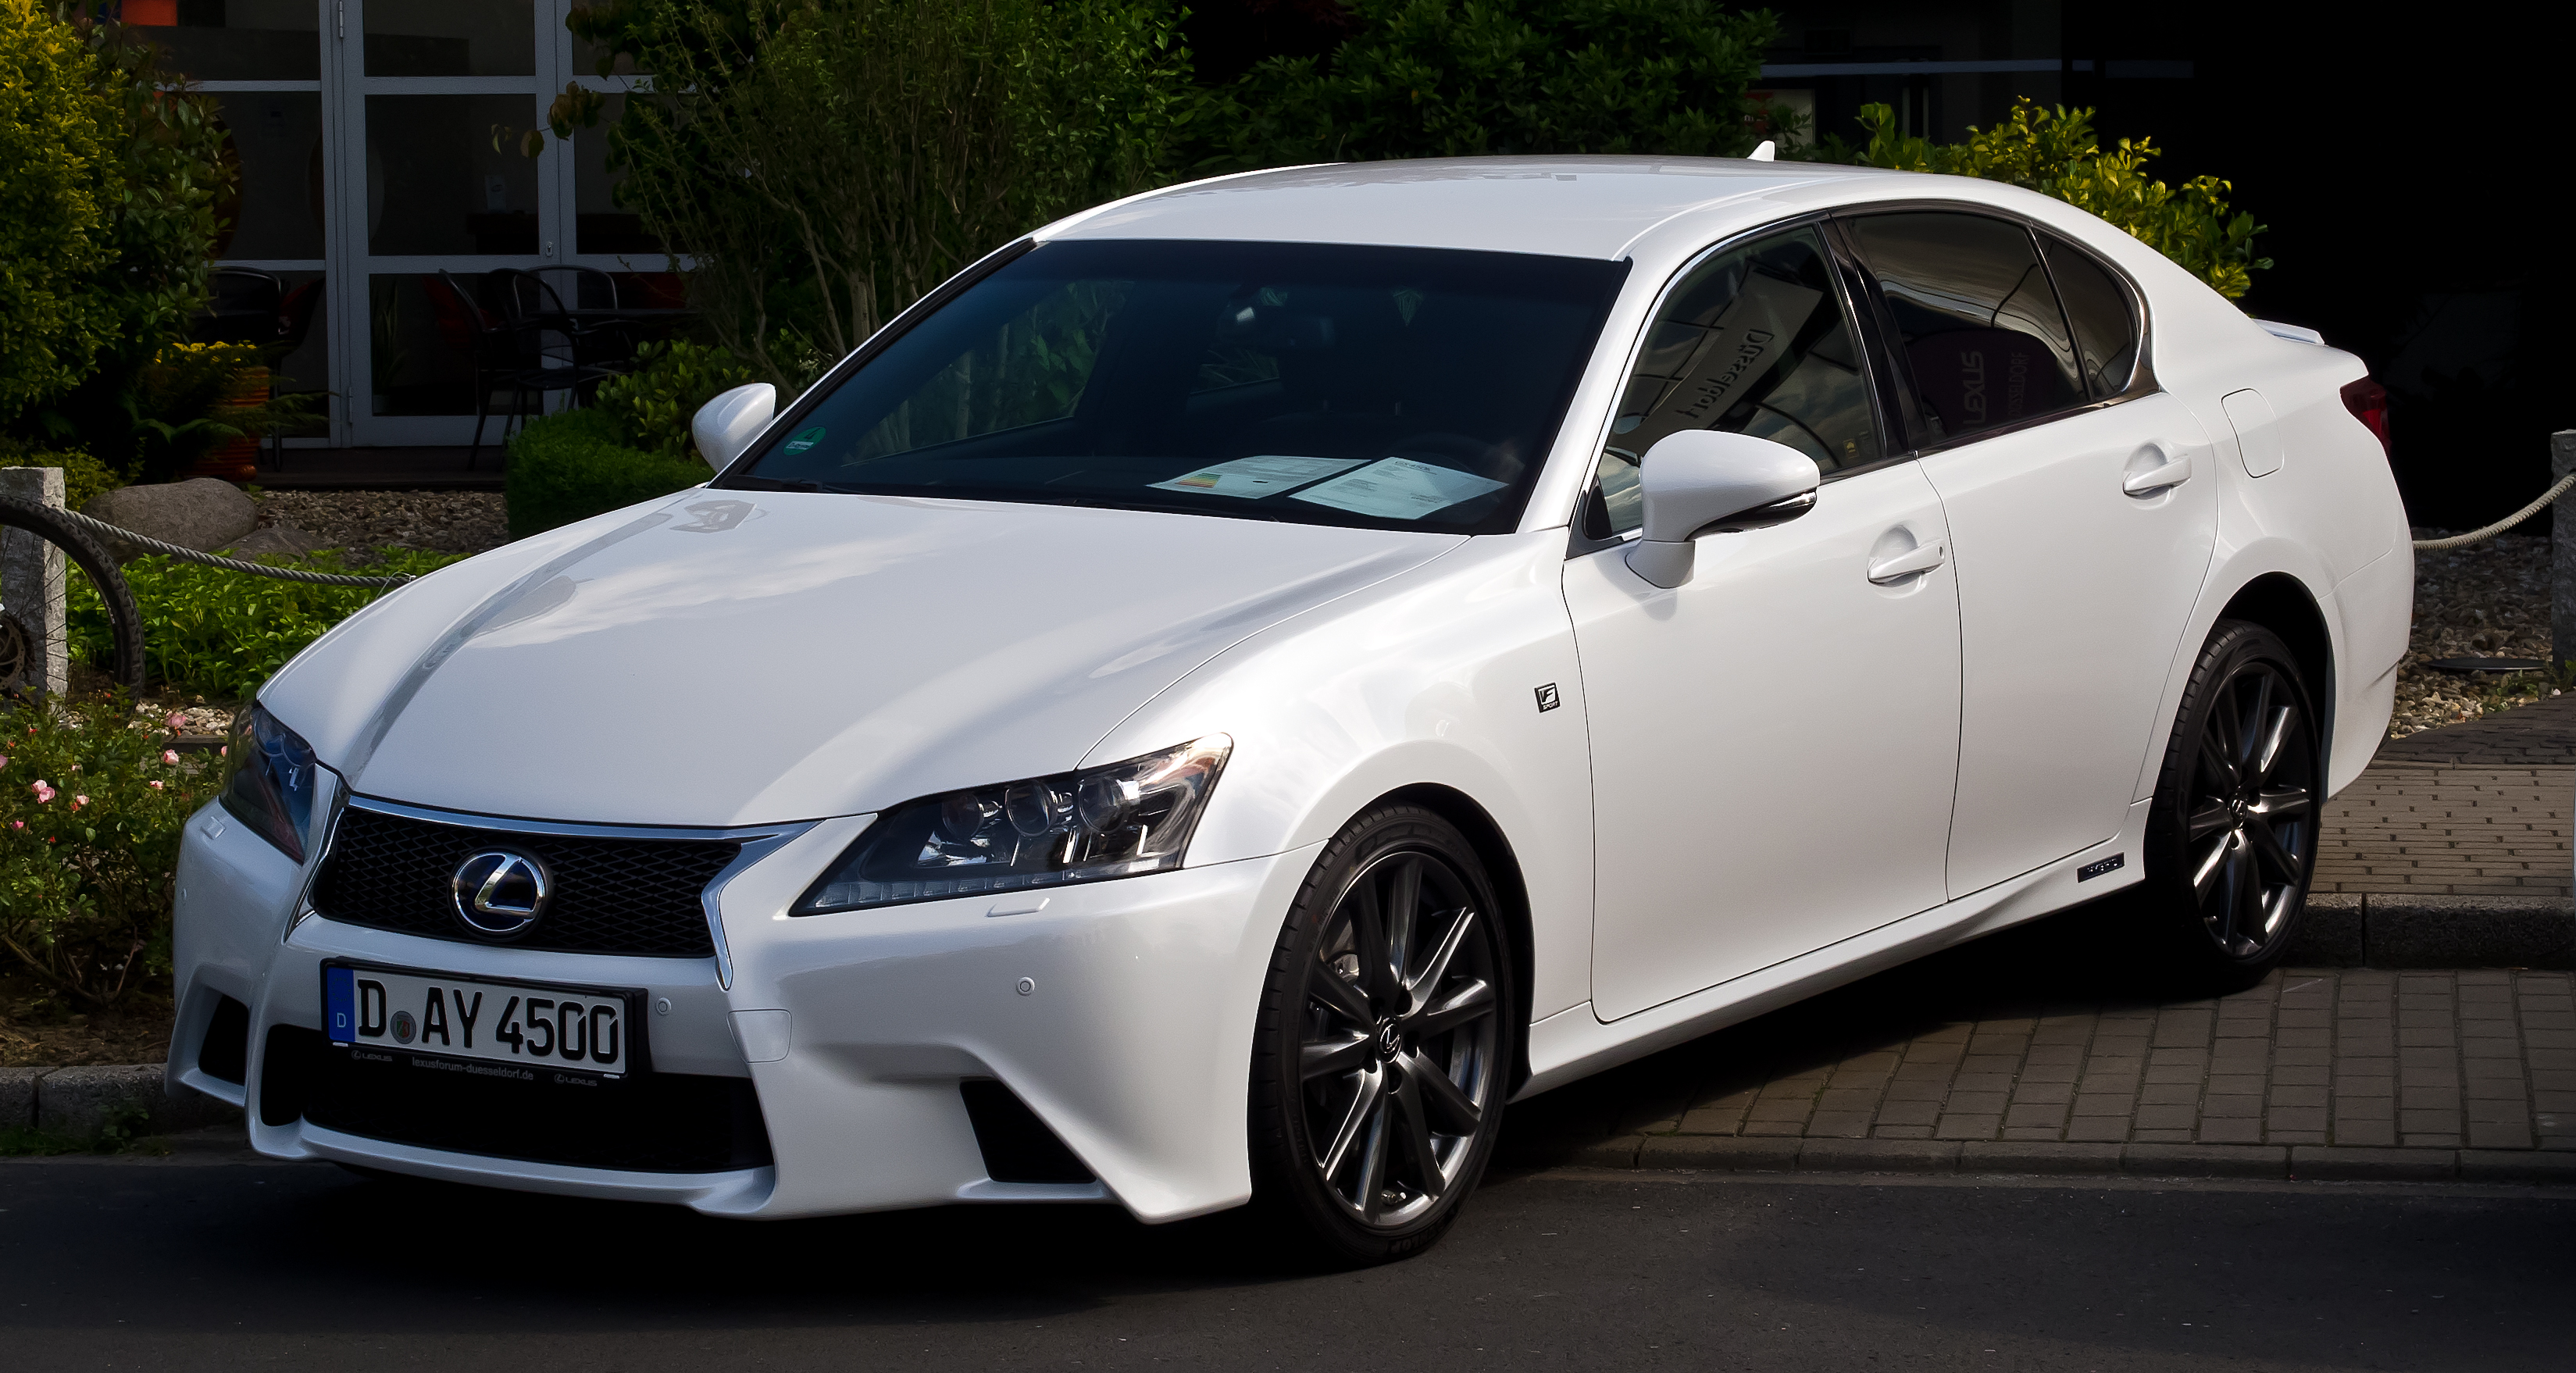 Image Result For Lexus Gs F Picture